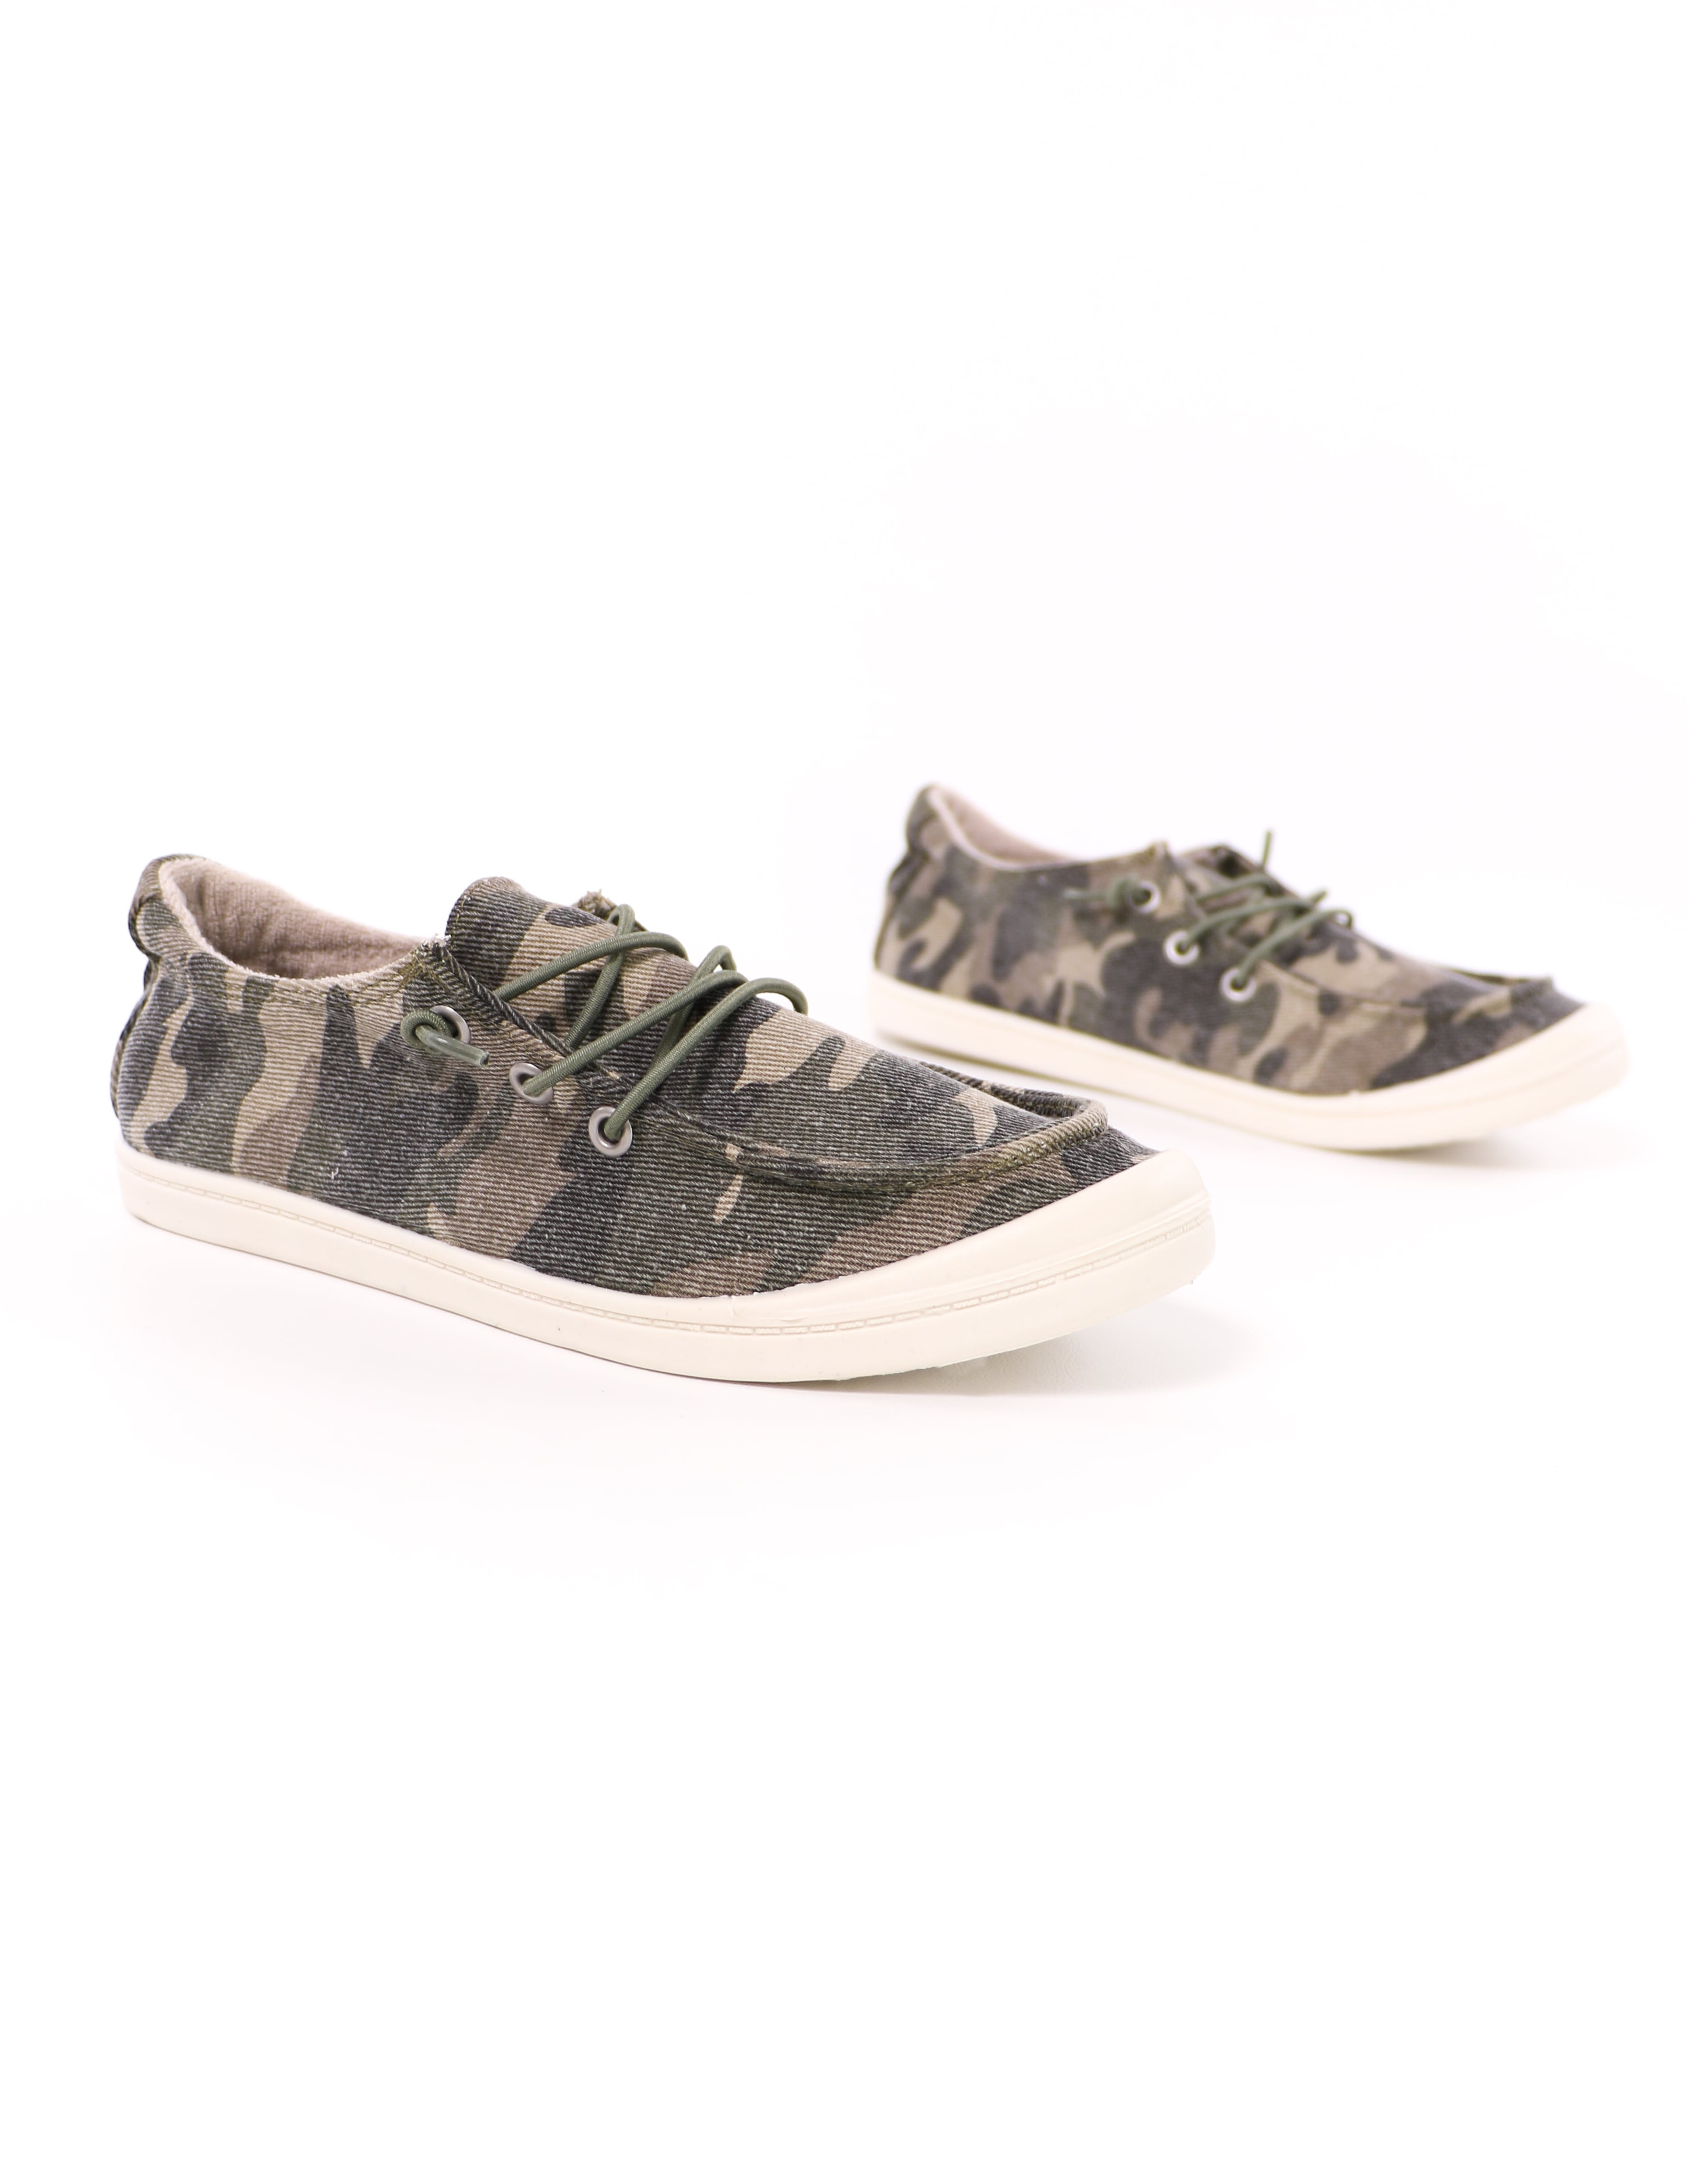 close up of the camo thinkin' boat you sneaker with white rubber sole - elle bleu shoes